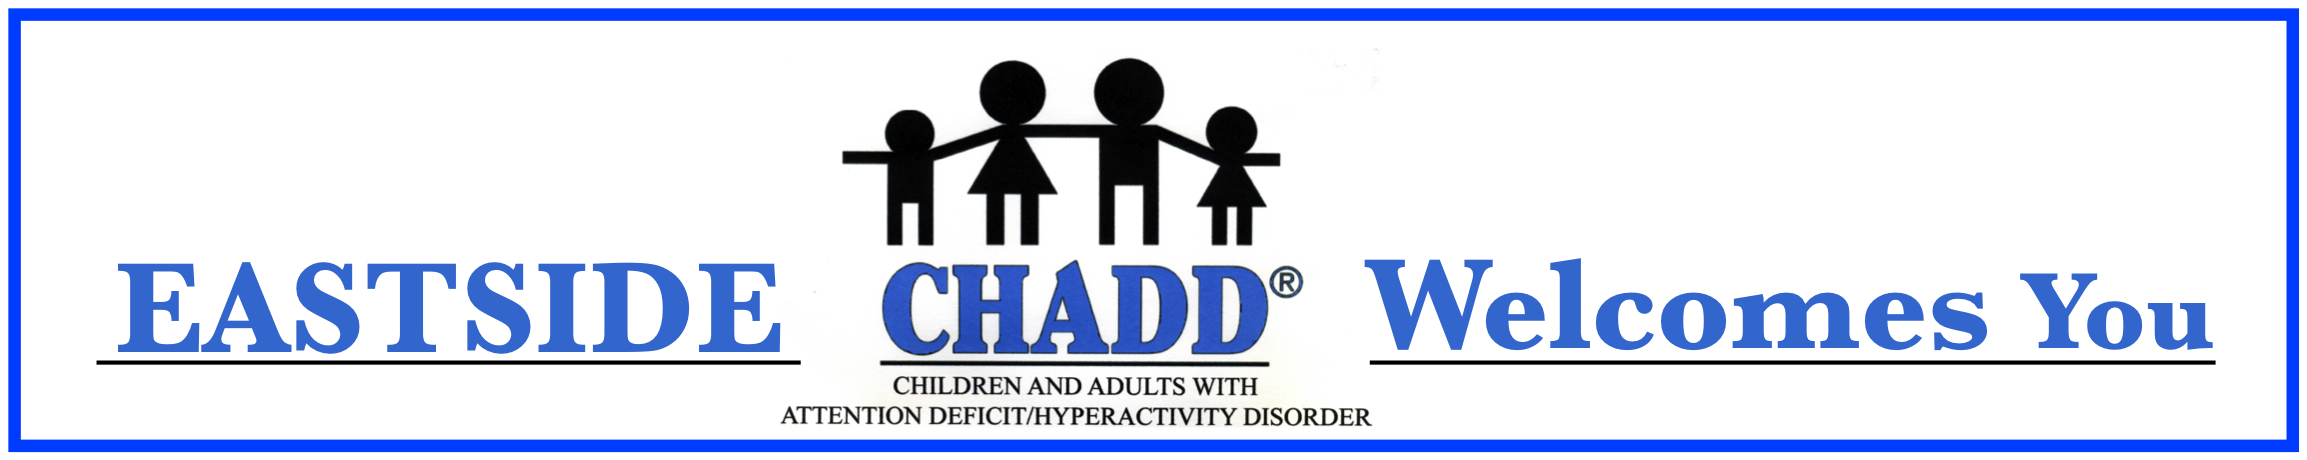 Eastside CHADD (Children and Adults with Attention Deficit-Hyperactivity Disorder